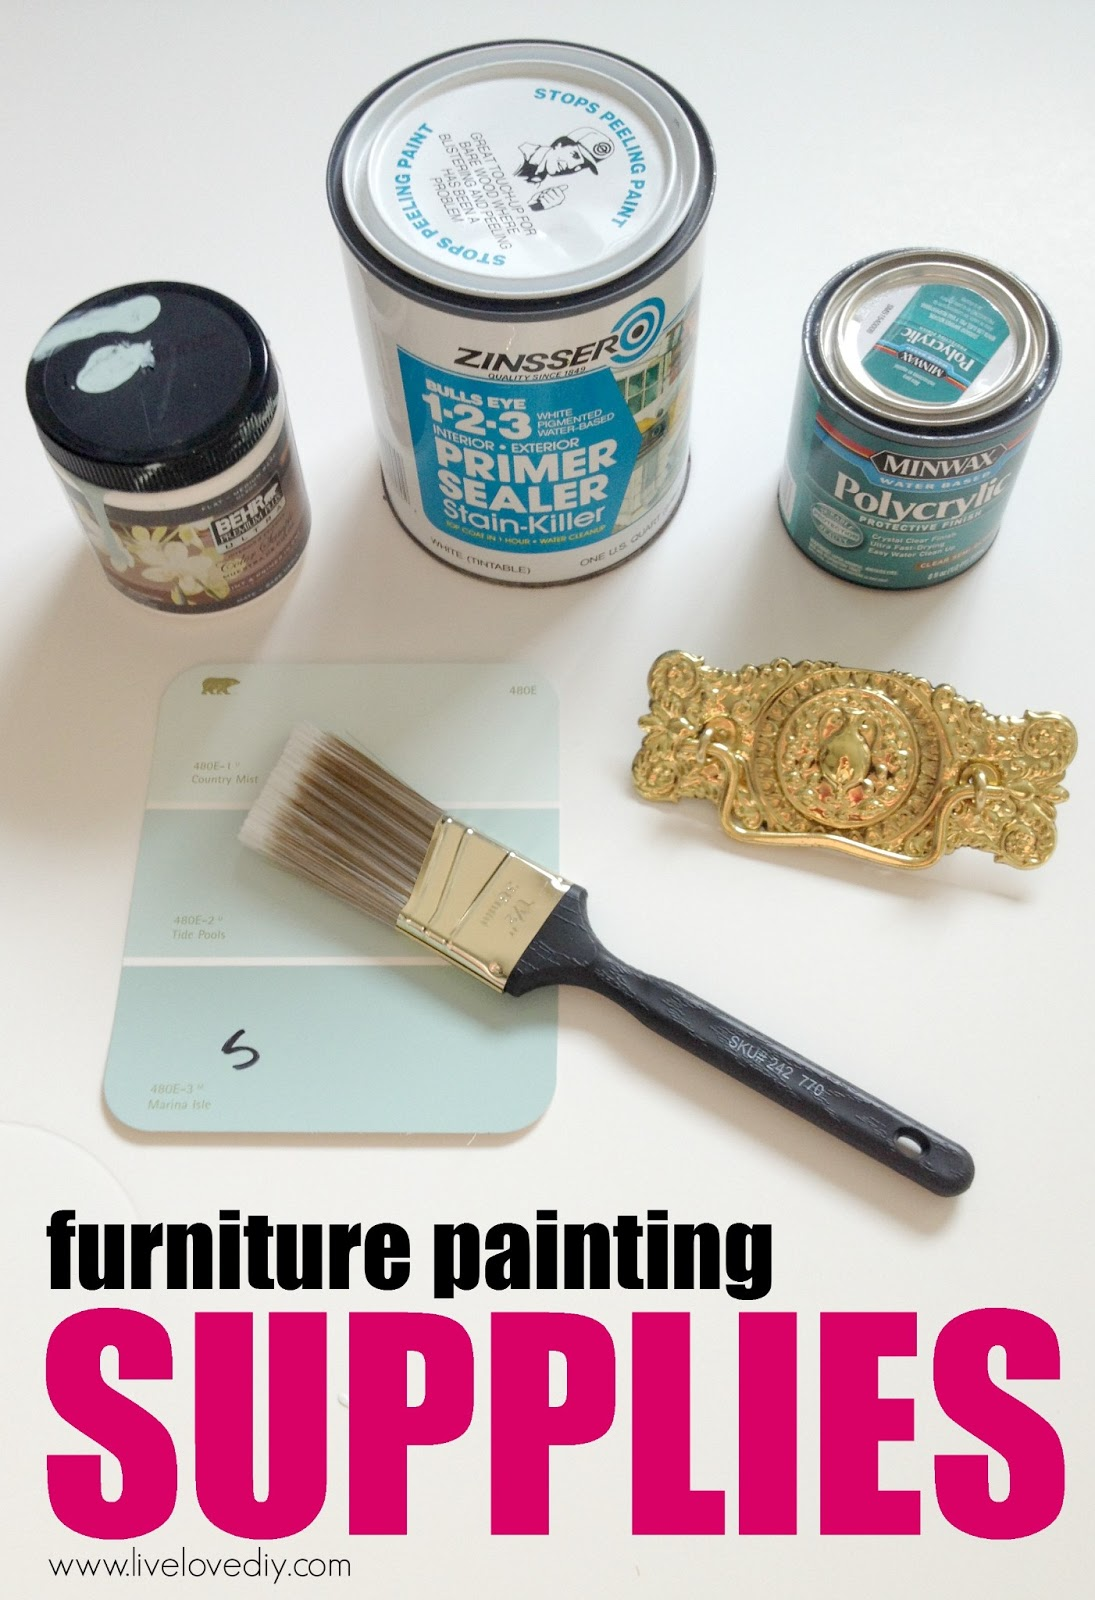 How to paint laminate furniture in 3 easy steps  Amazing tips. LiveLoveDIY  How To Paint Laminate Furniture in 3 Easy Steps